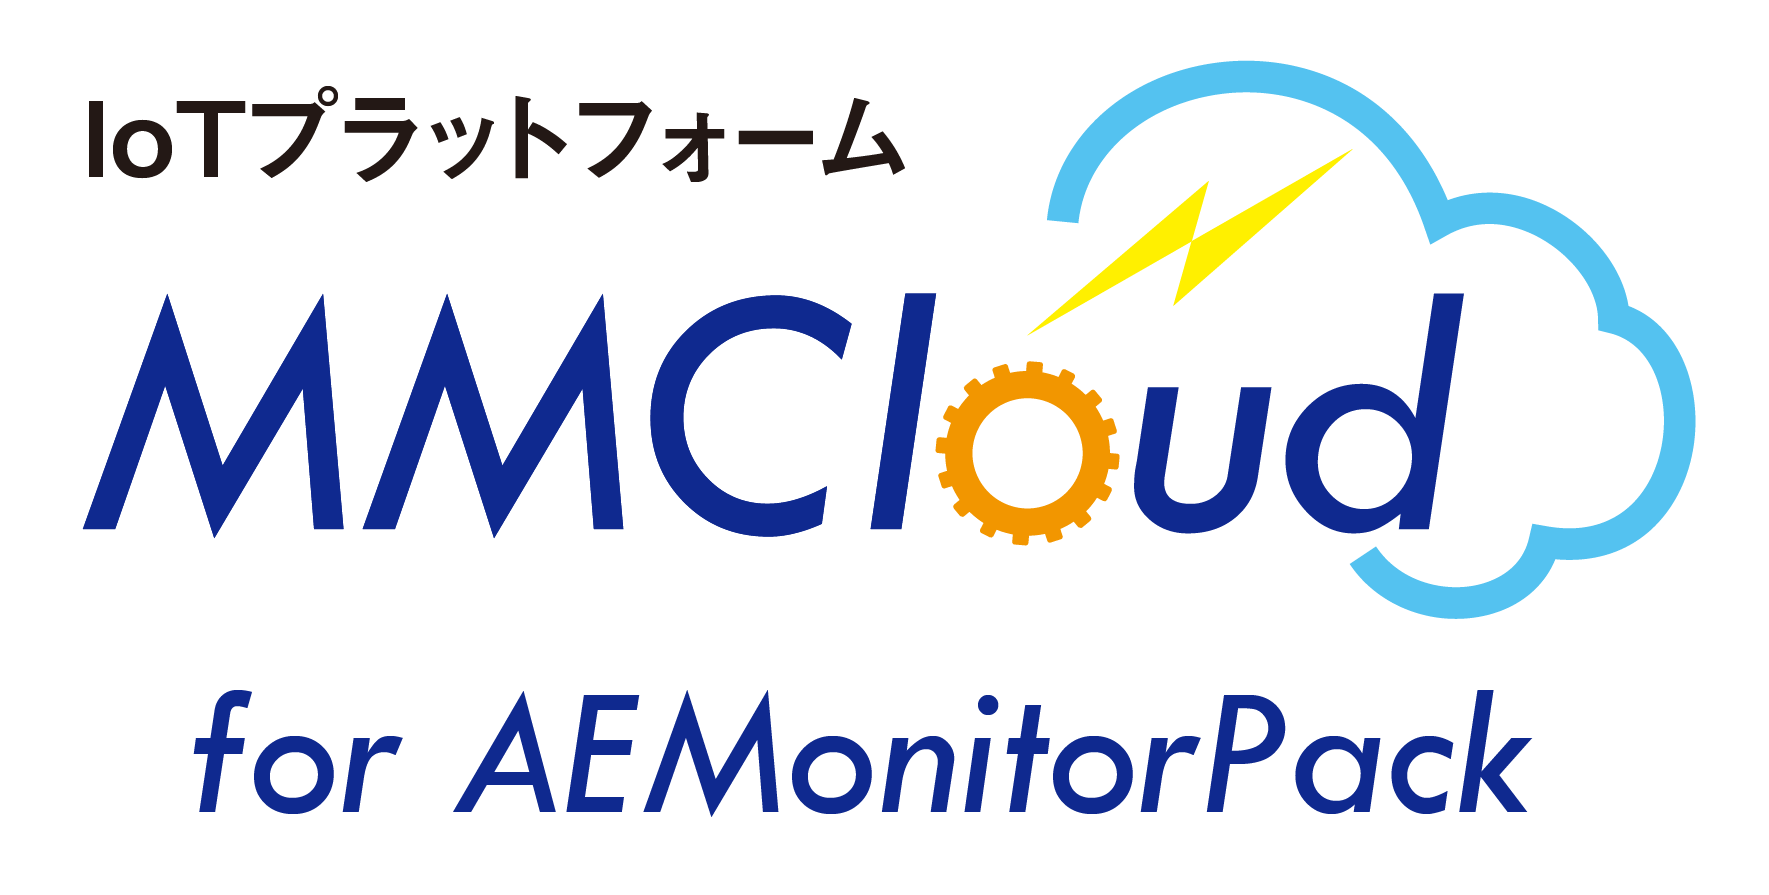 MMCloud for AEMonitorPack